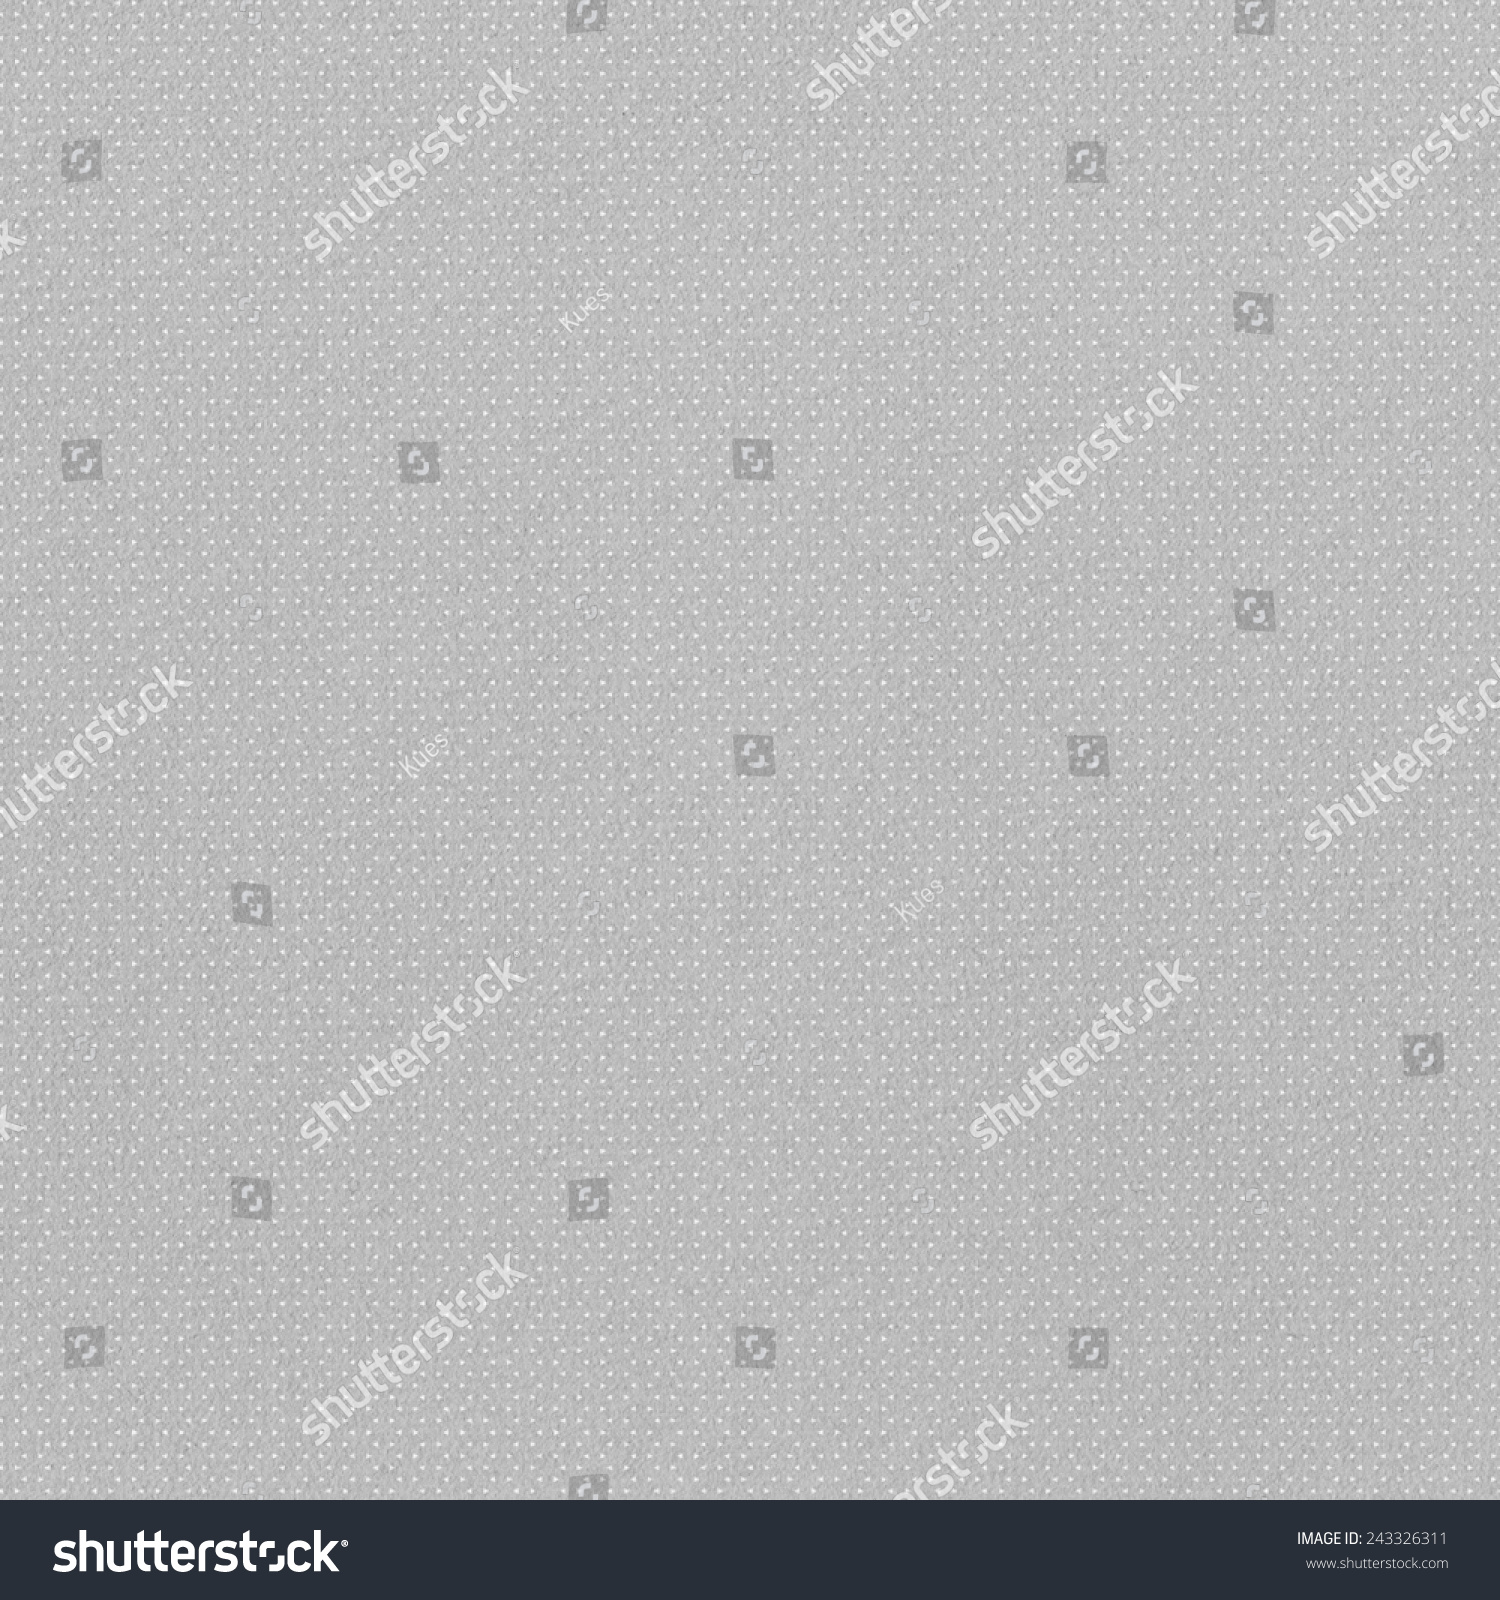 Download Wallpaper Grey Watercolor - stock-photo-watercolor-paper-wallpaper-texture-243326311  Picture_804316.jpg